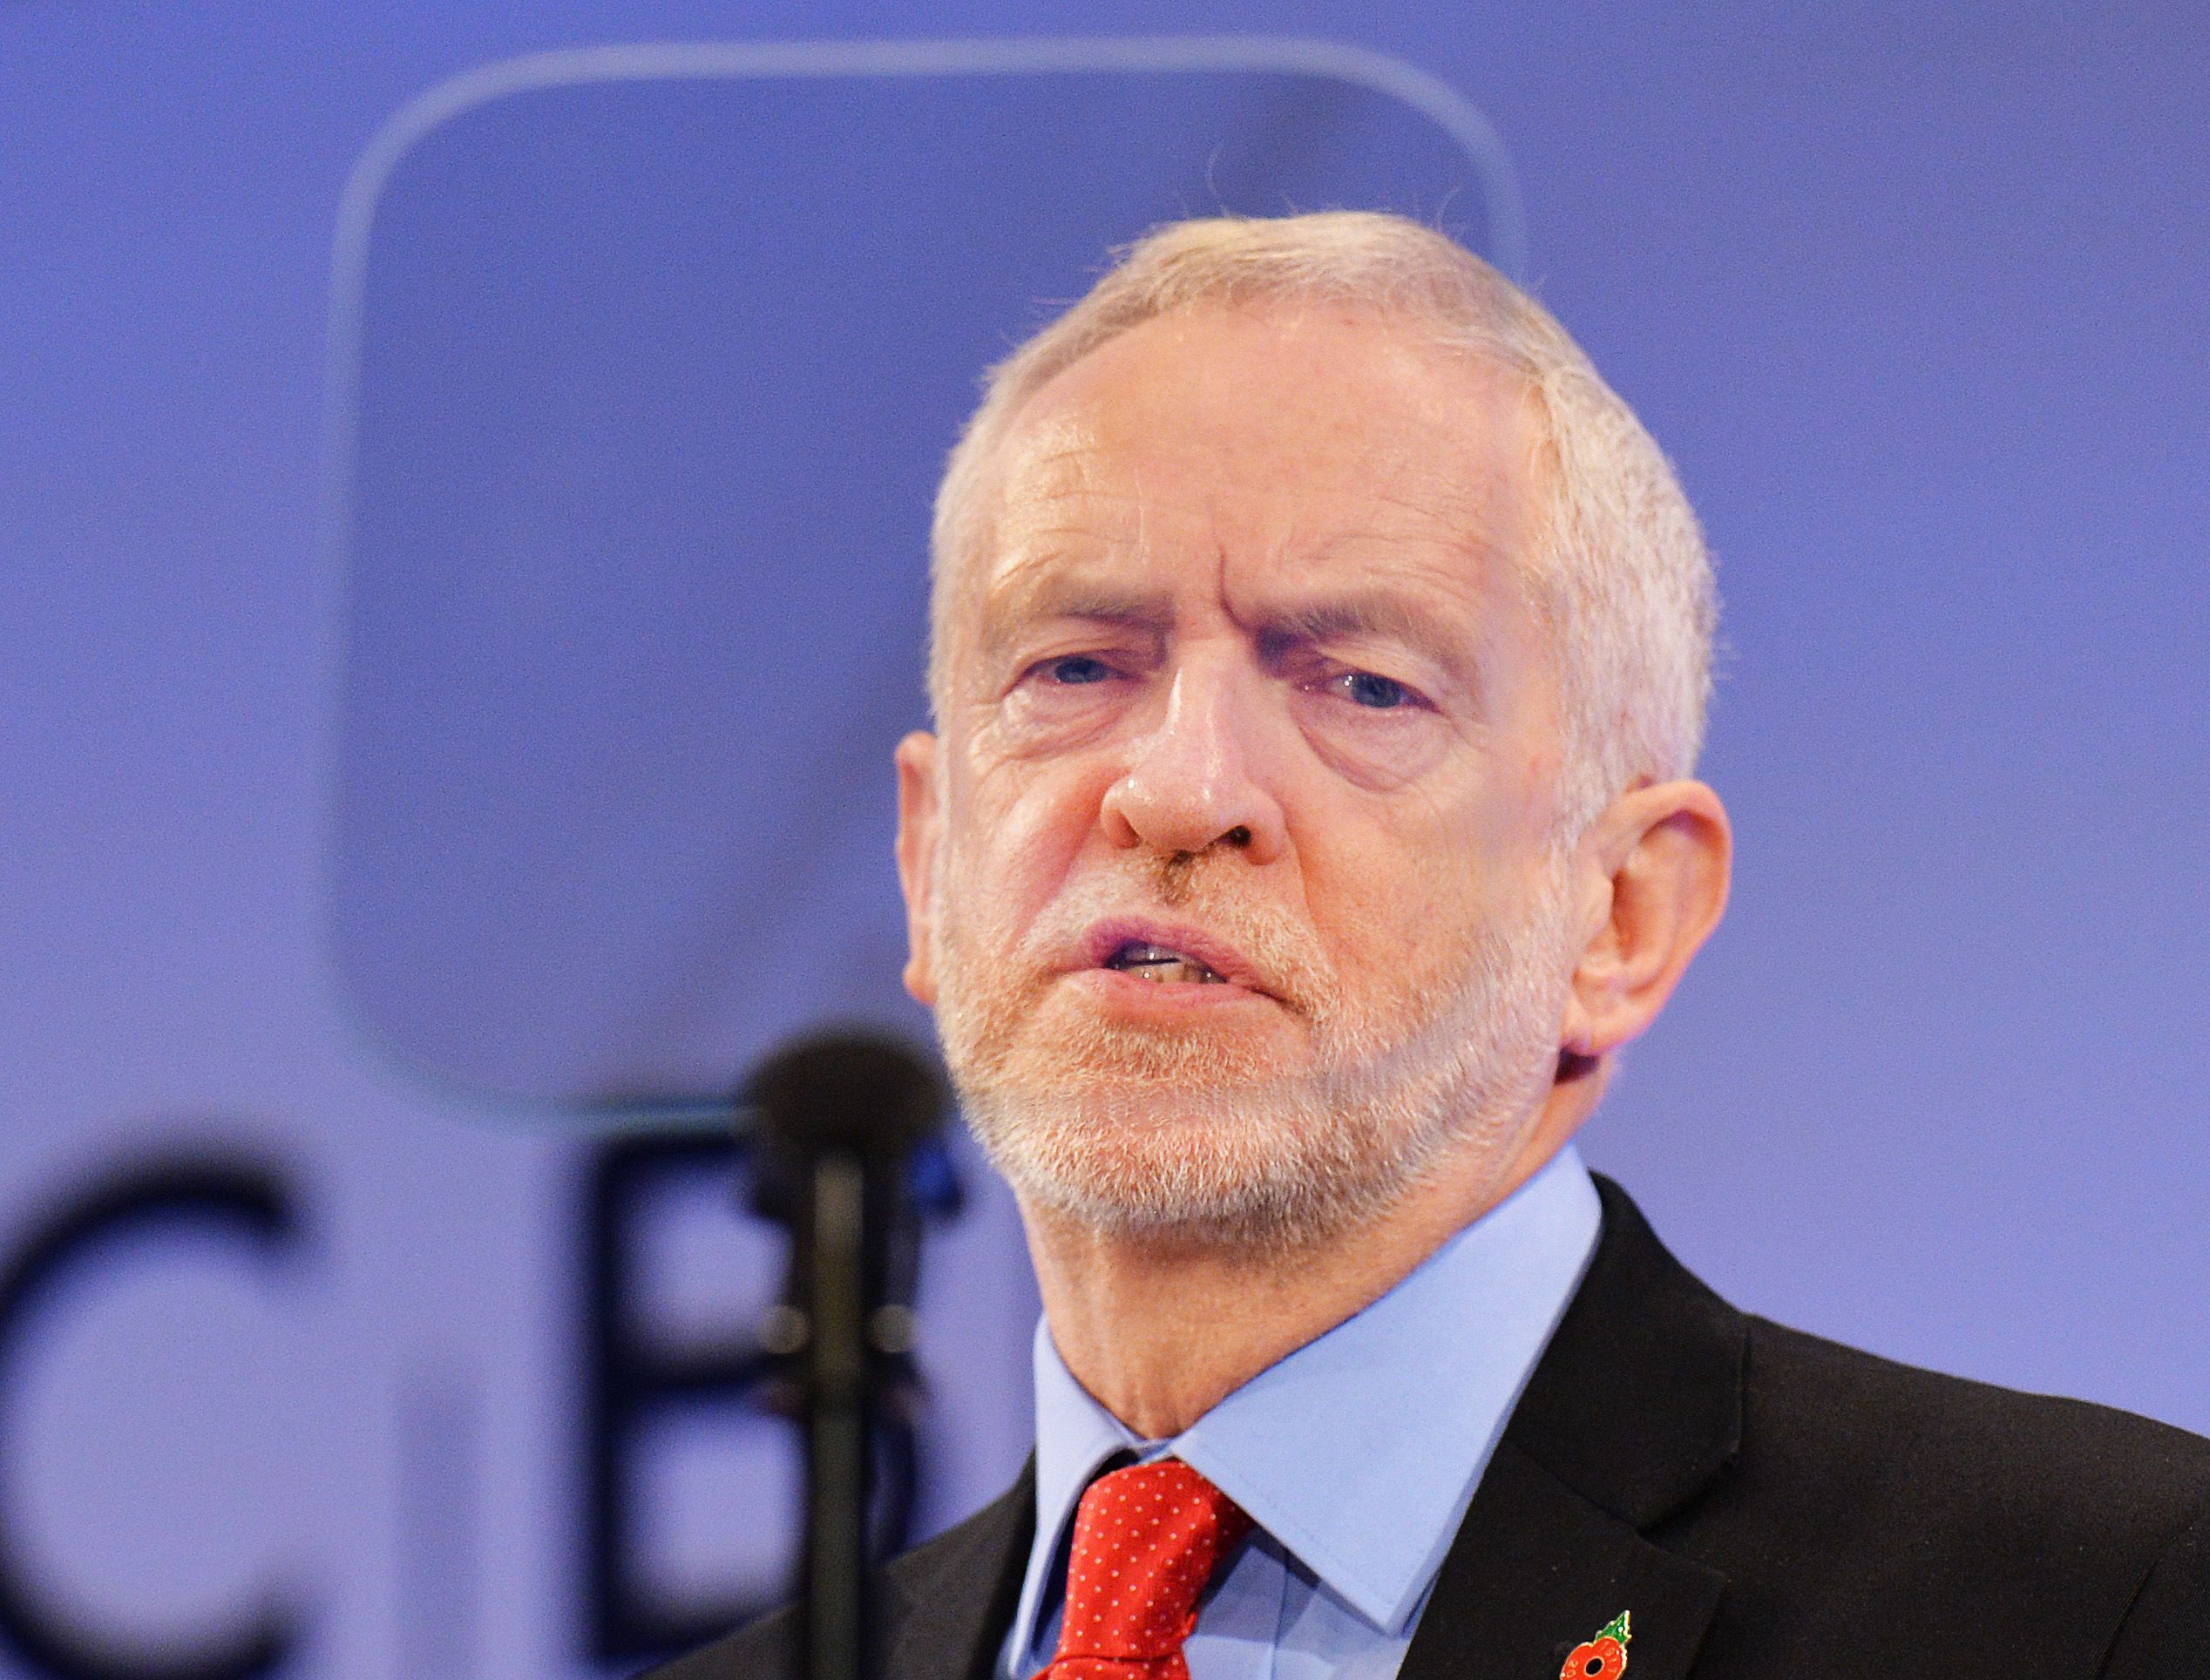 <strong>Support for Jeremy Corbyn is falling, according to the poll</strong>